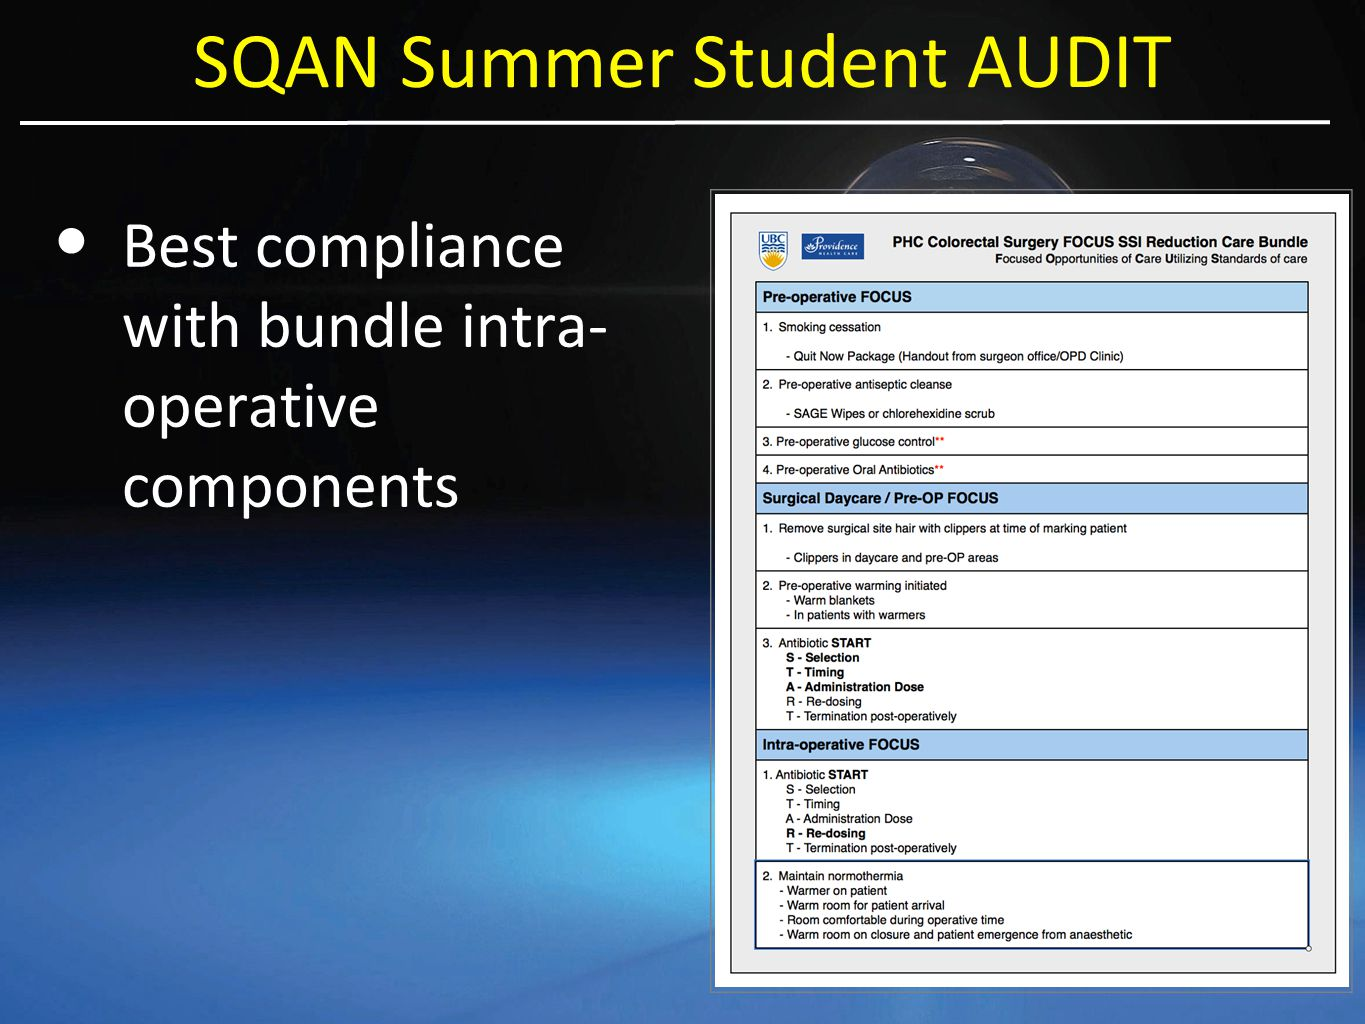 SQAN Summer Student AUDIT Best compliance with bundle intra- operative components